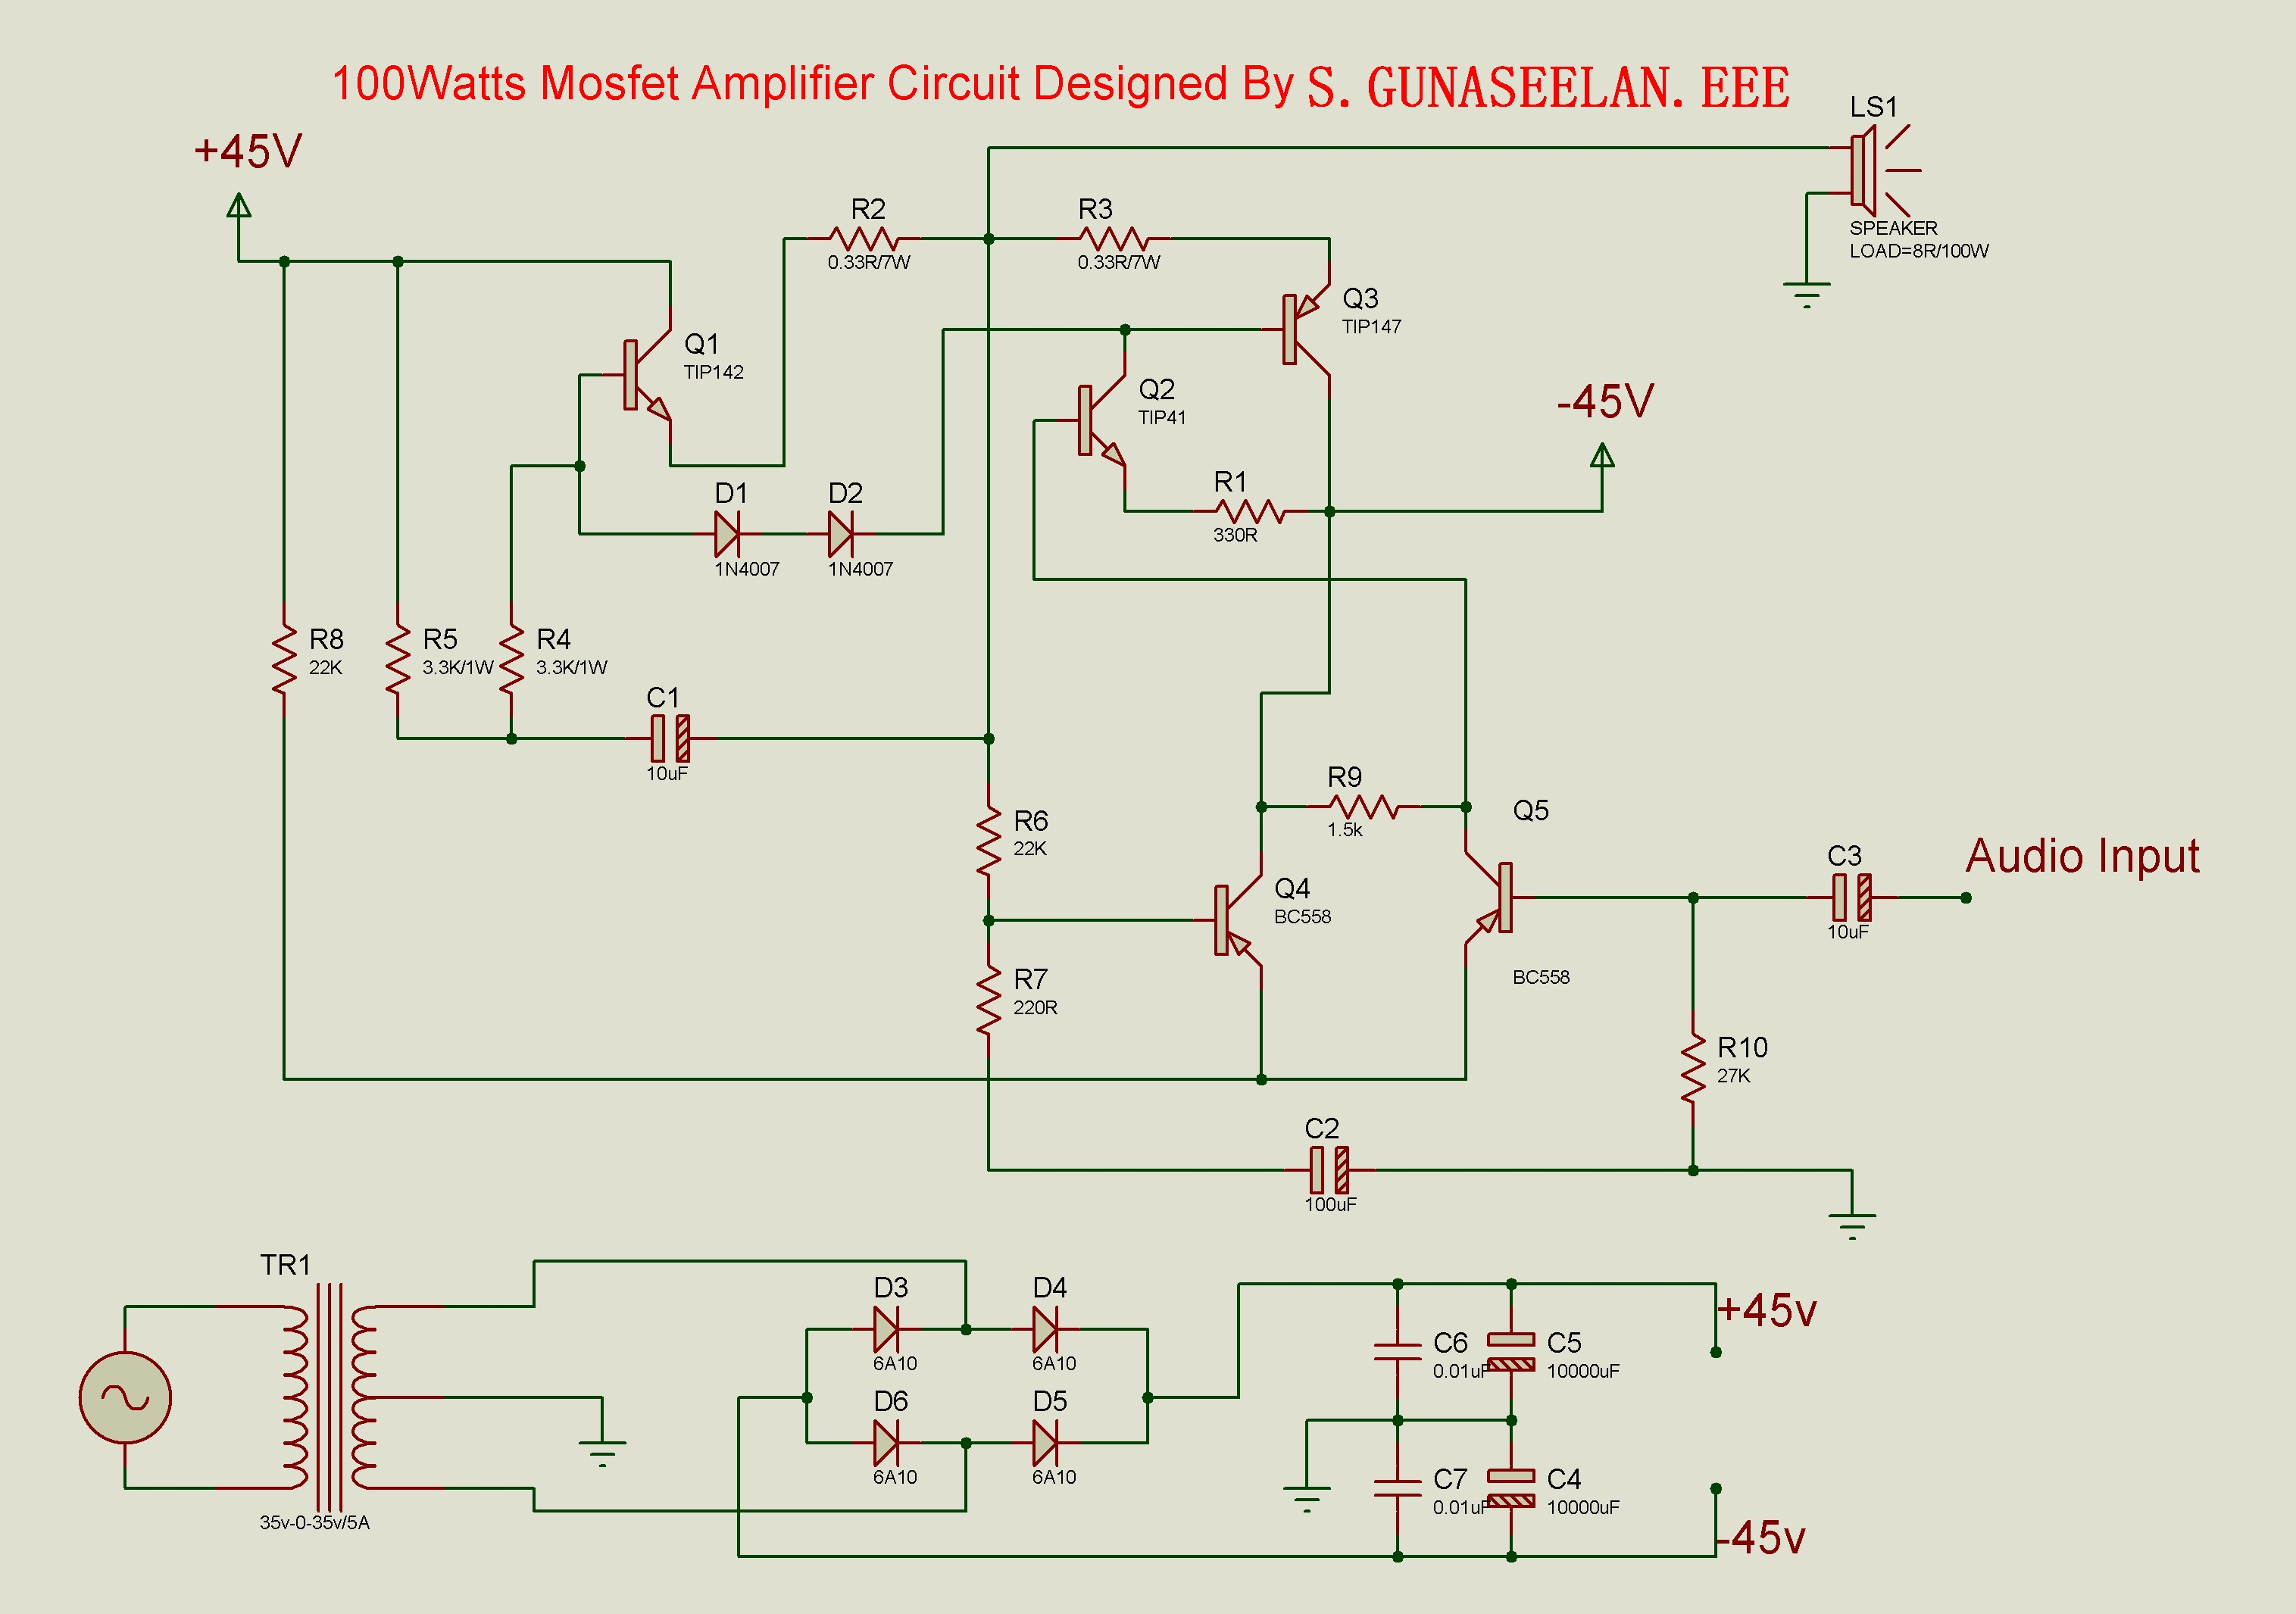 Gunacircuits Mosfet Amplifier Wiring Diagram This Is A Circuit Using On Audio Low Cost 150 Watt The Cheapest You Can Makei Think